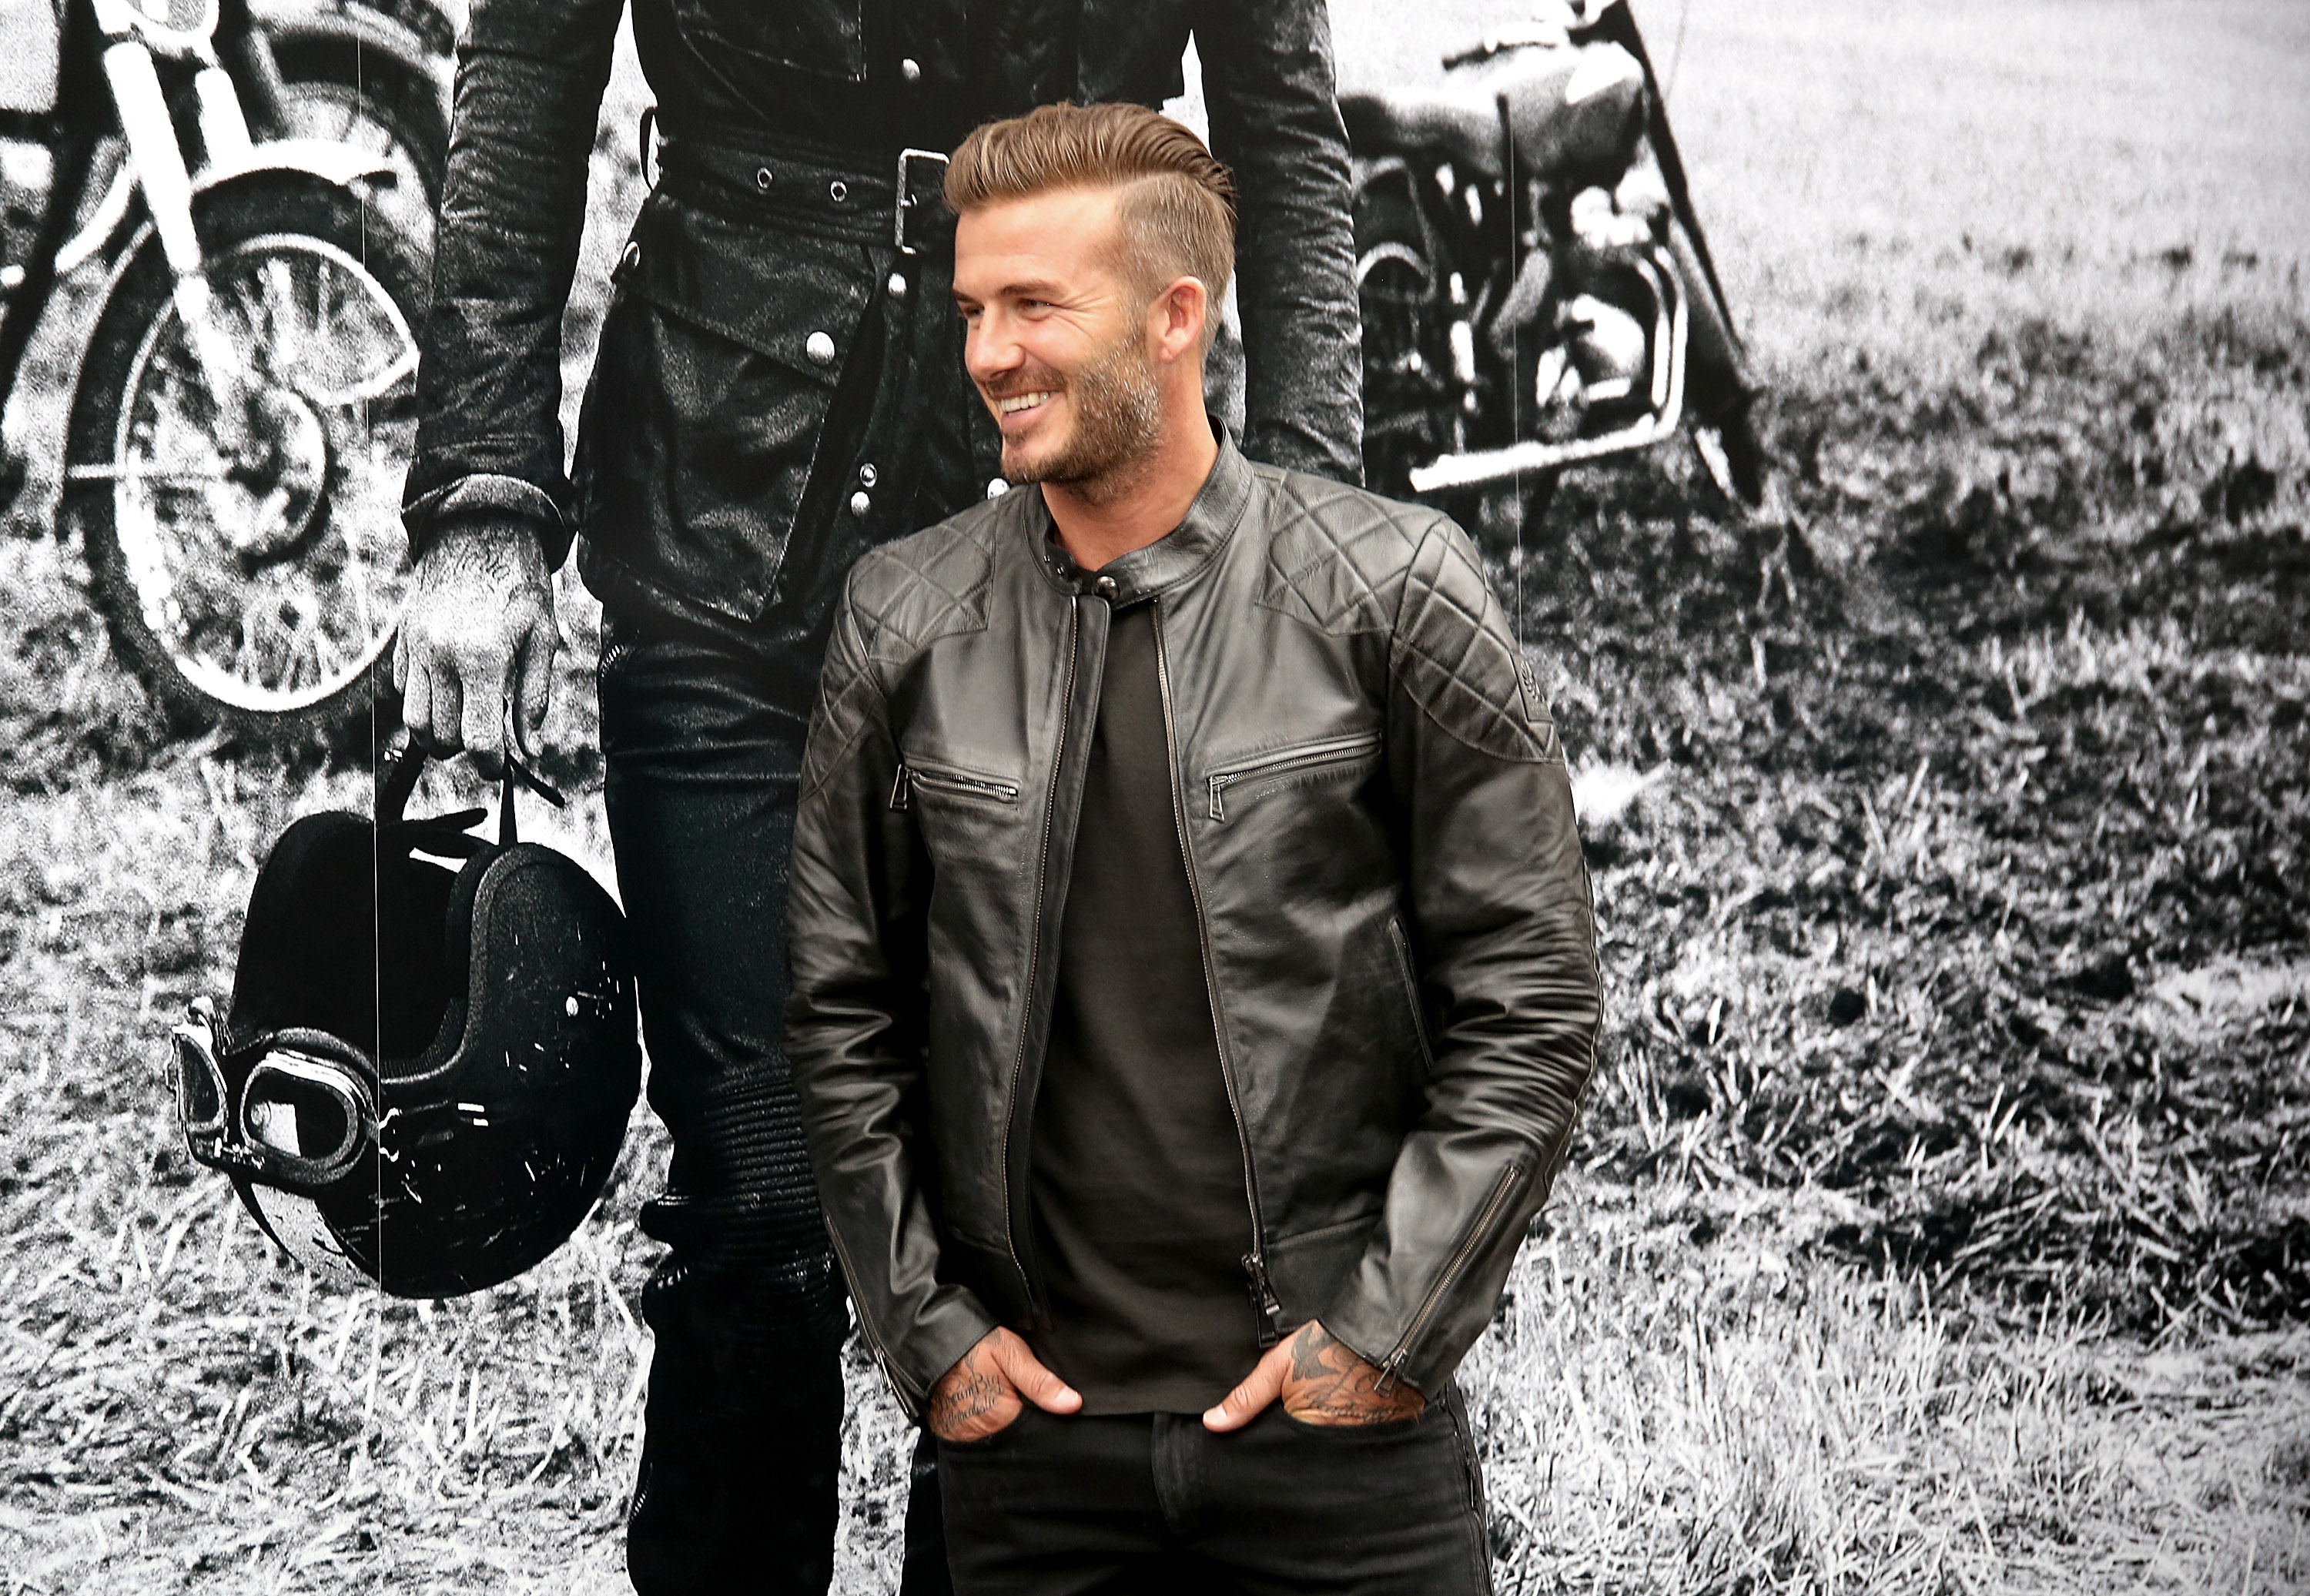 David beckham 39 s style transformation over the years david beckham photos for David beckham